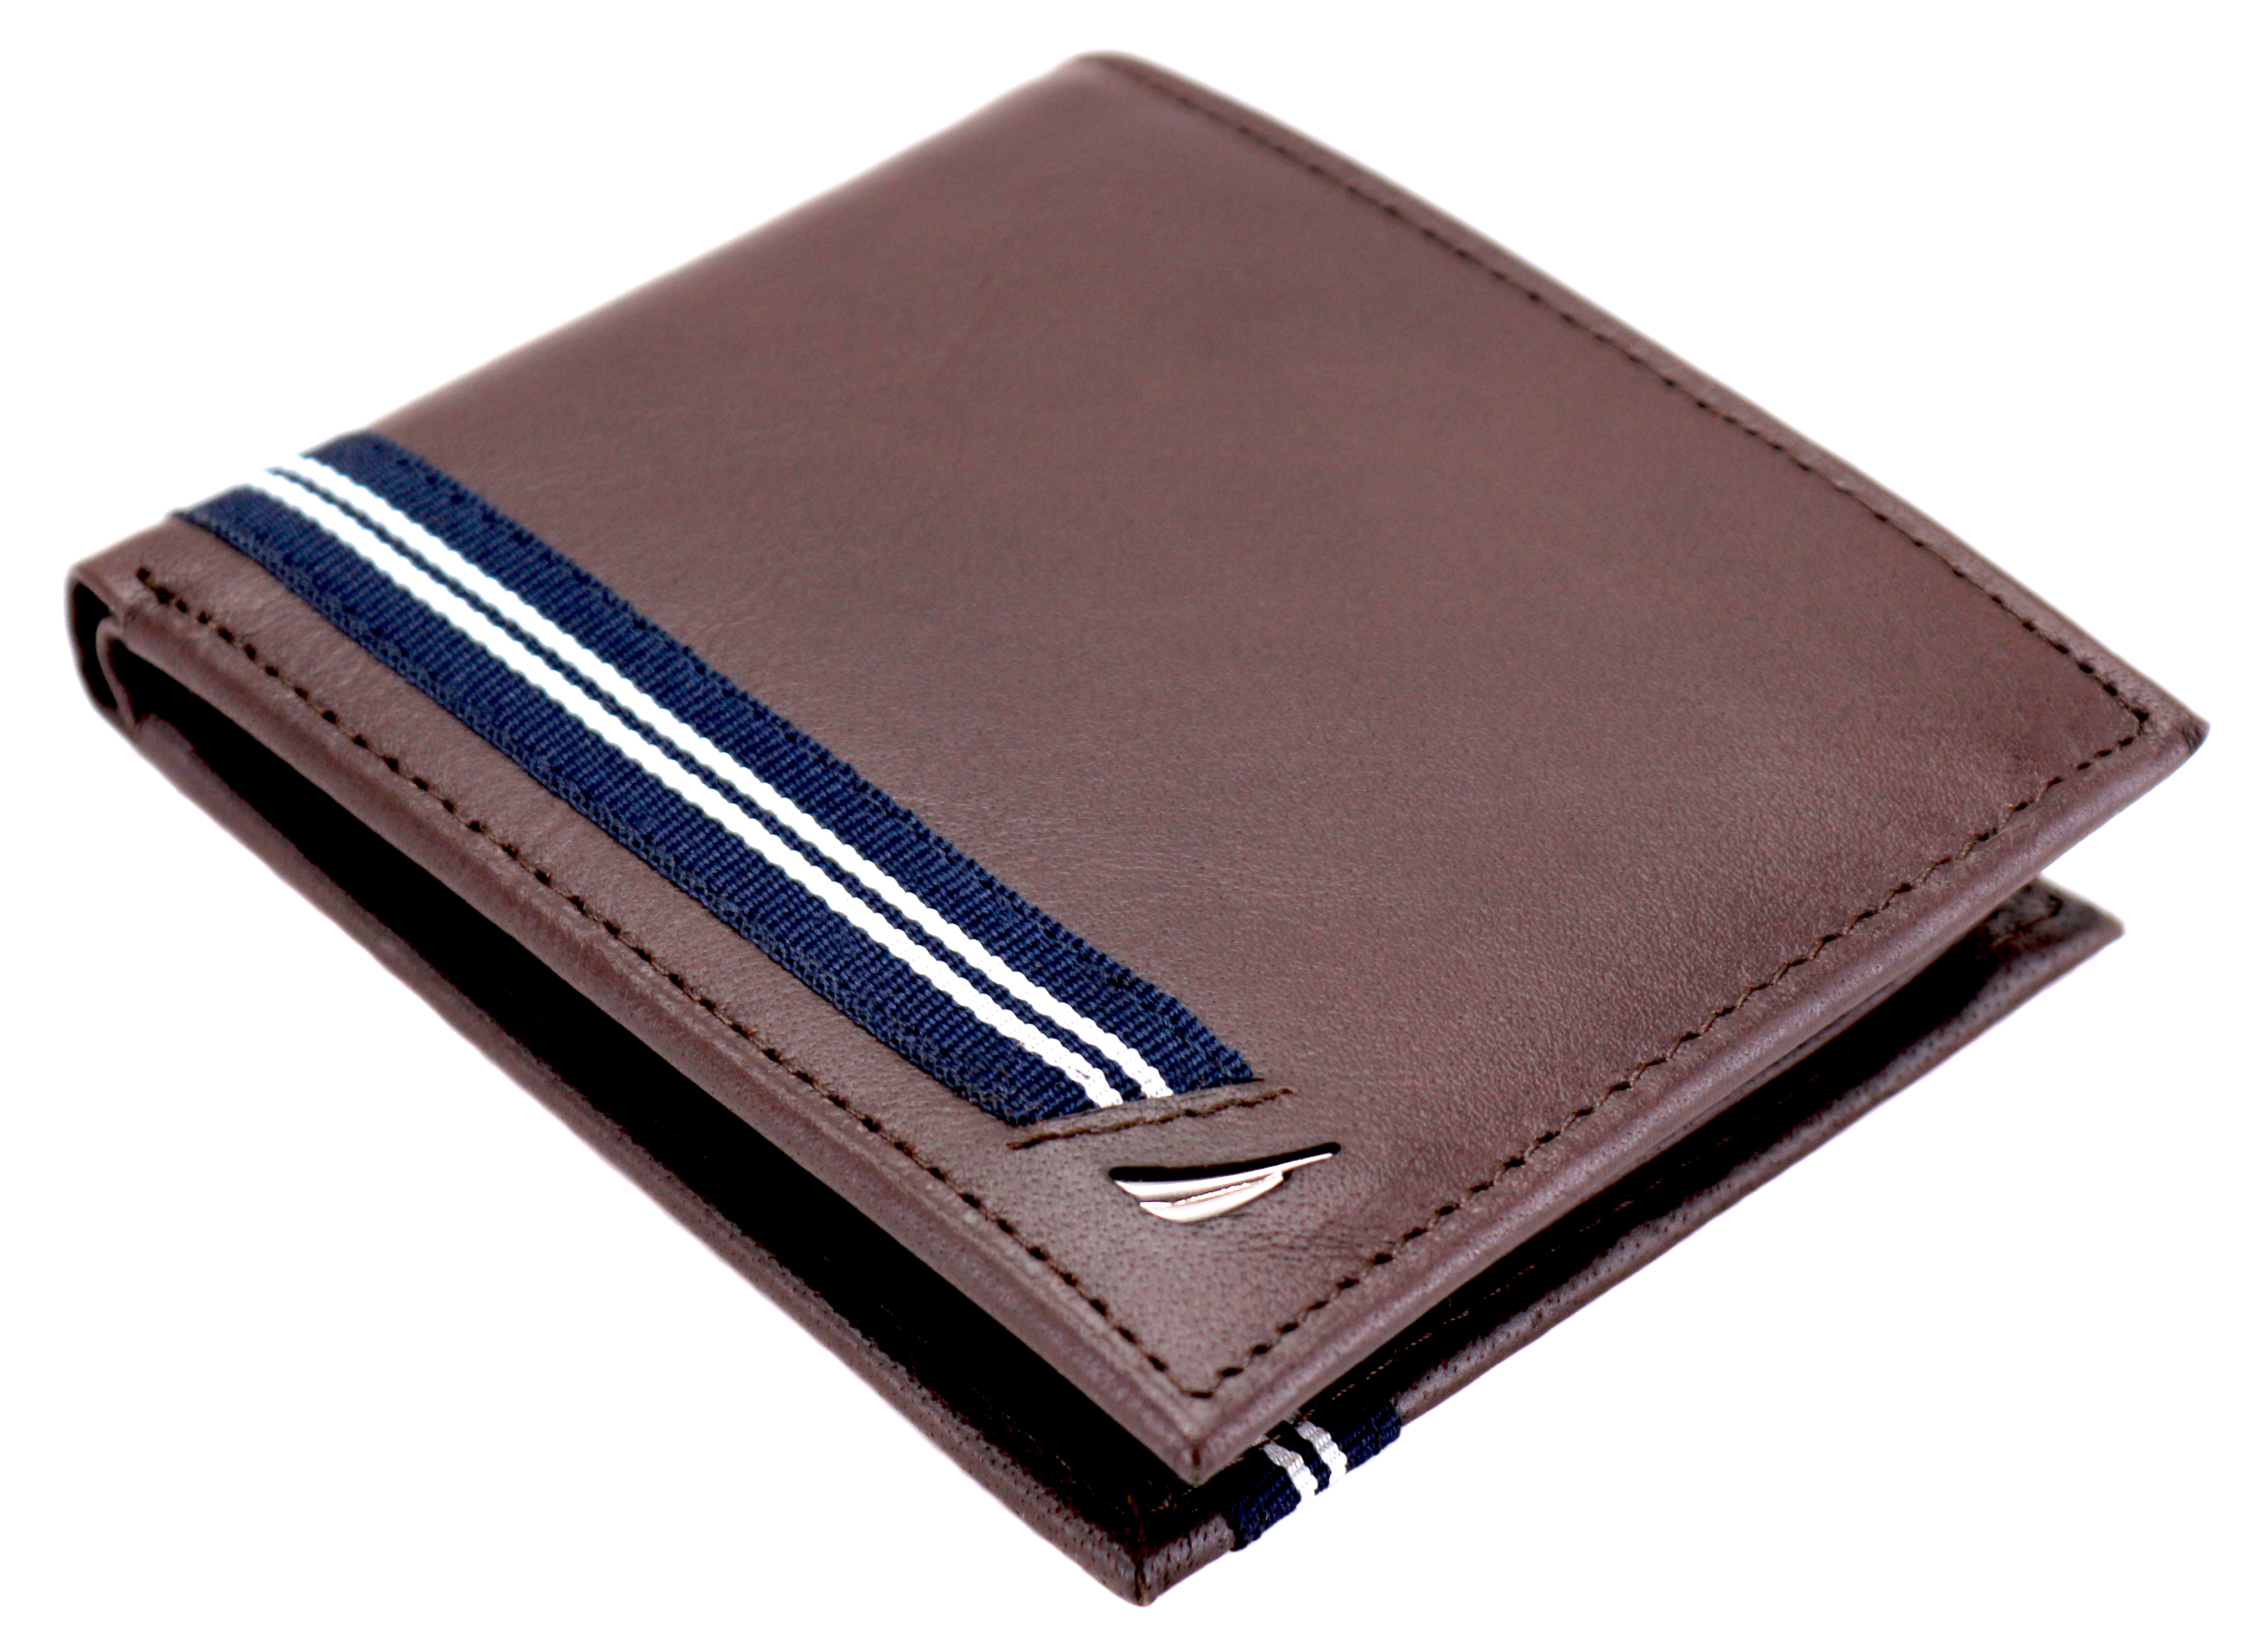 Nautica-Men-039-s-Genuine-Leather-Credit-Card-ID-Double-Billfold-Passcase-Wallet thumbnail 14